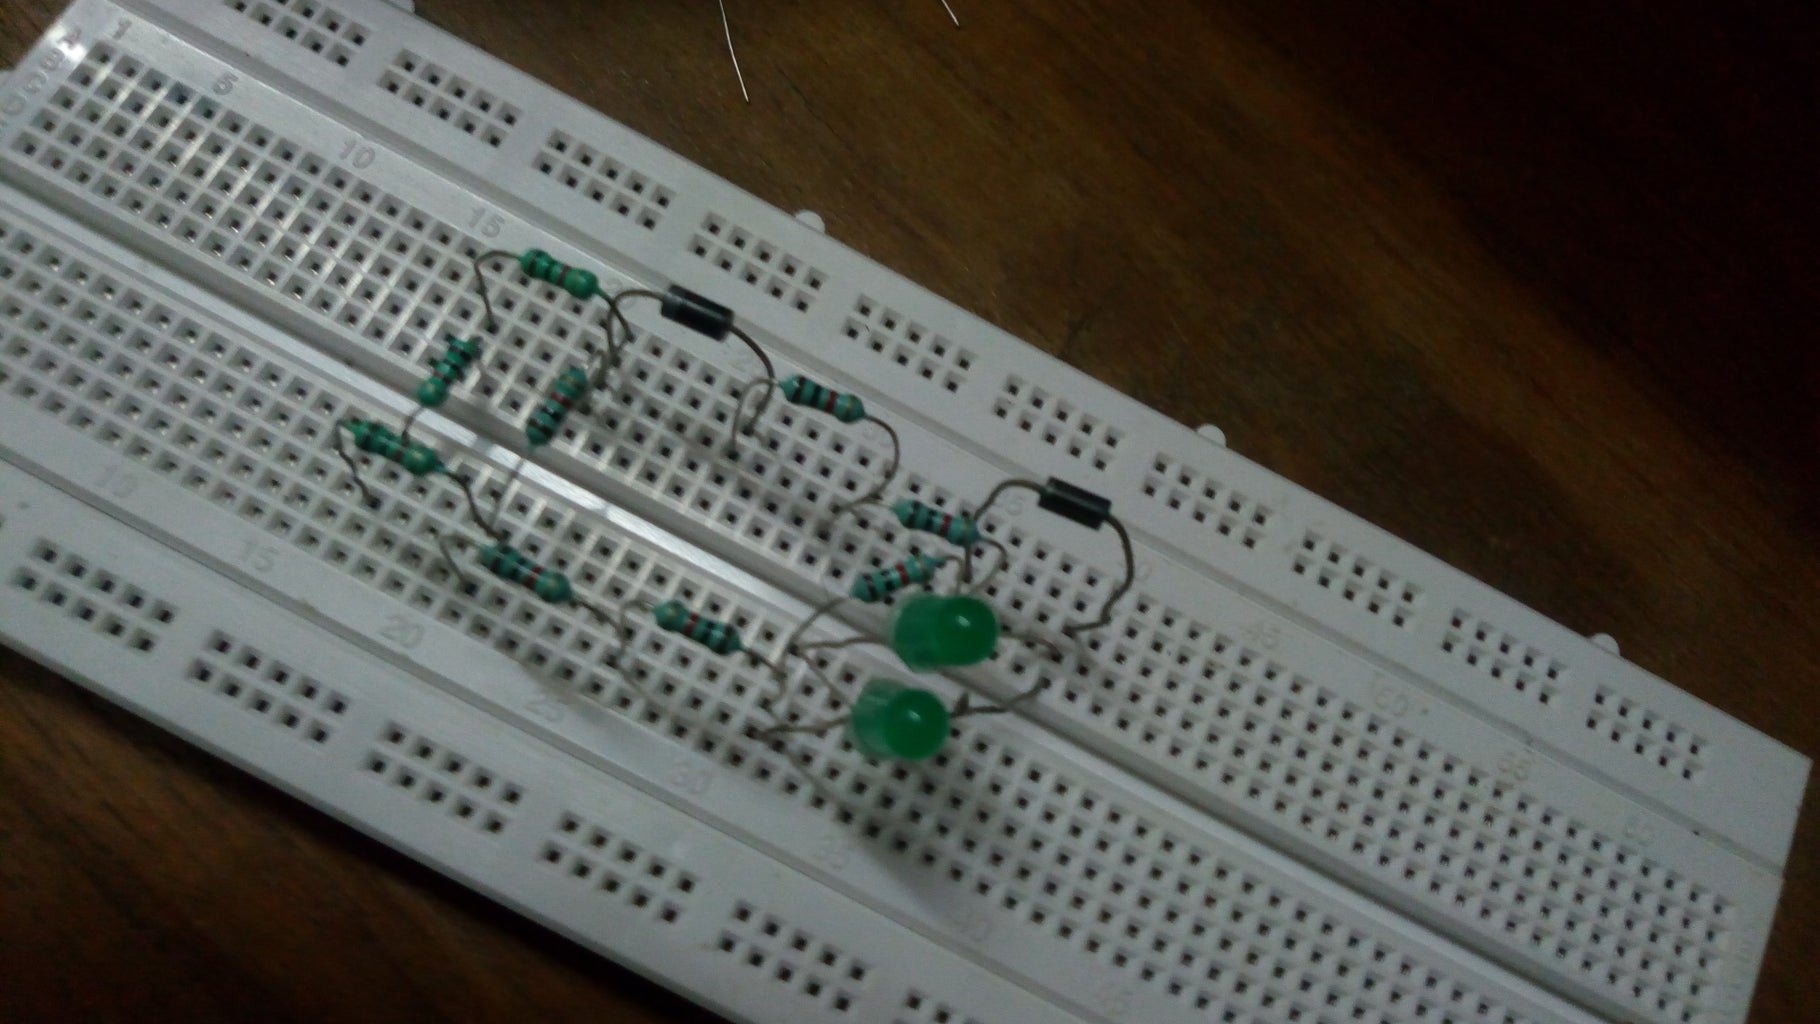 Placing the Green LED's and the Last 1K Resistor.